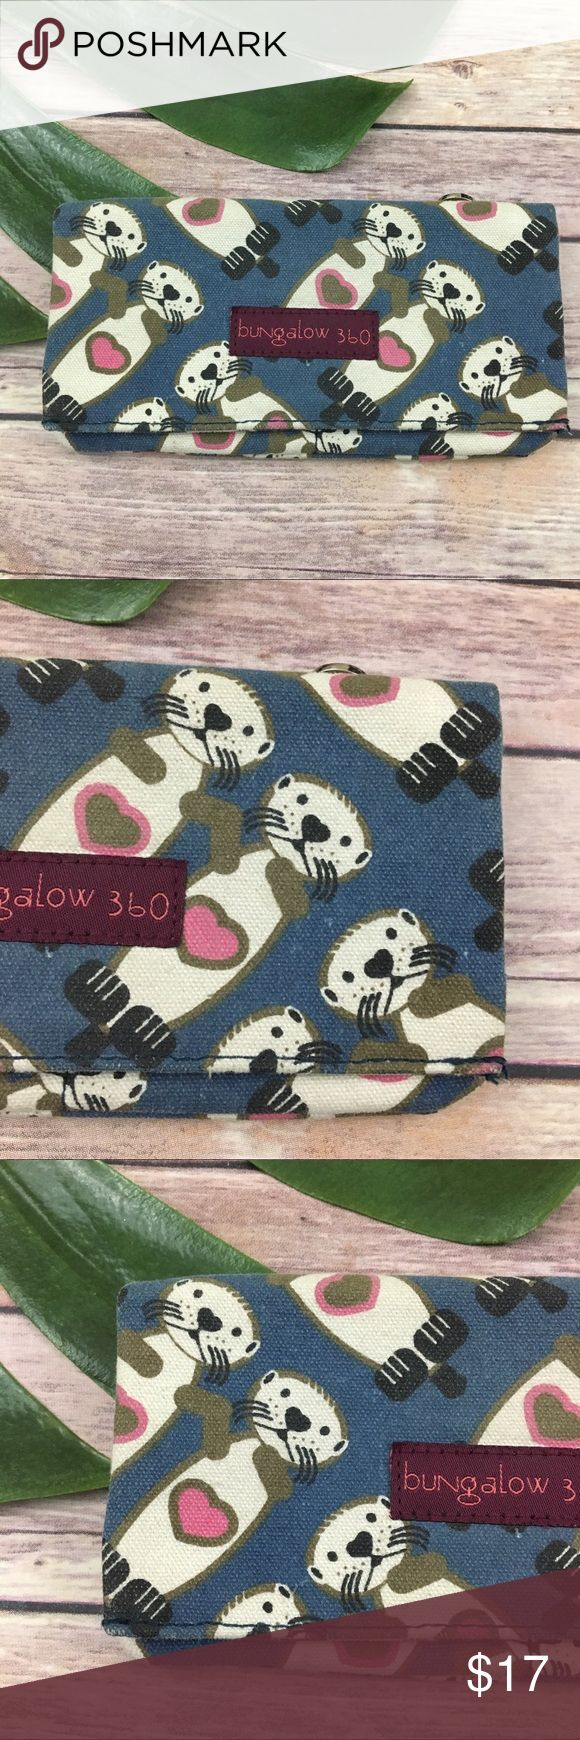 Bungalow 360 sea otter canvas wallet Bungalow 360 blue sea otter print fold over wallet. It is free from any rips or stains but does have some wear to the corners, please see pictures. It measures about 7 inches long, 4 inches tall and is about 1/2 inch deep. bungalow 360 Bags Wallets